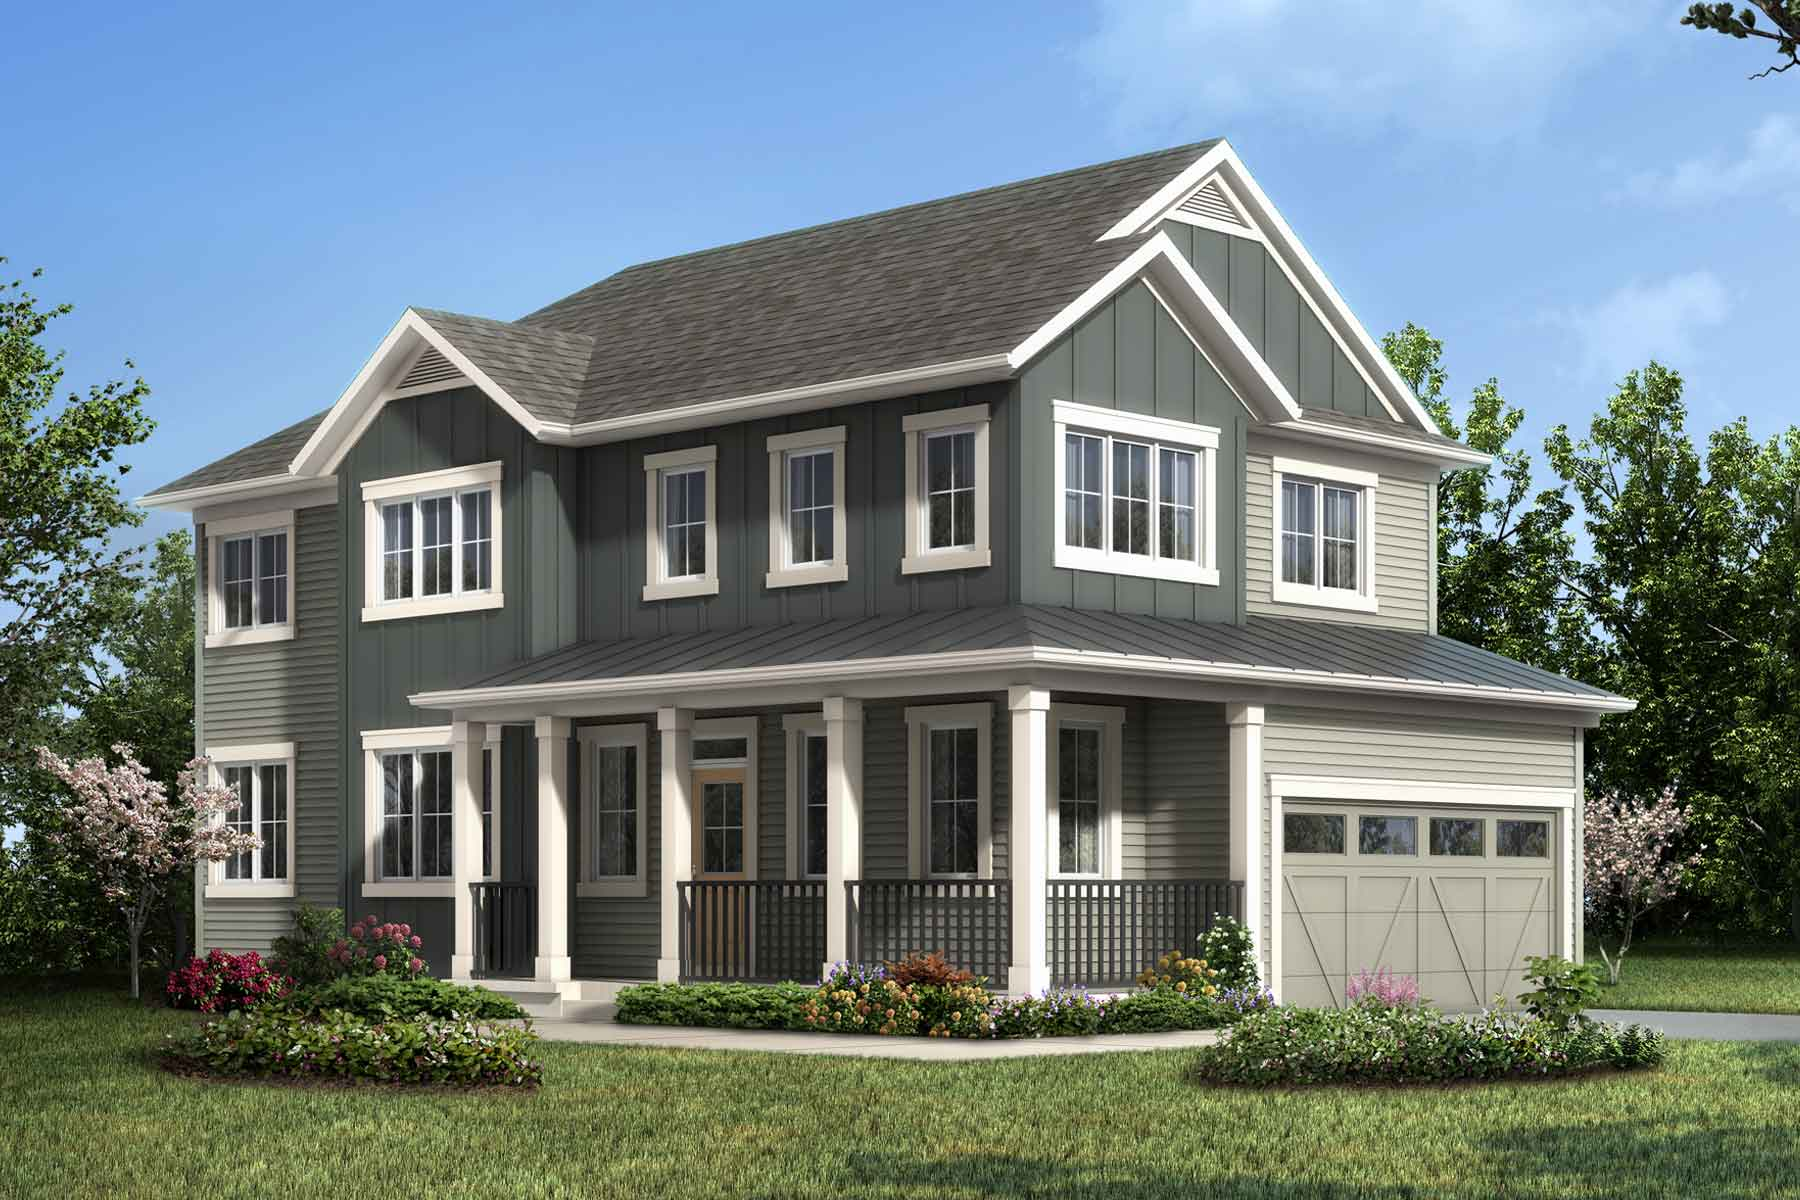 Berkley Corner Plan elevationfarmhouse_carrington_berkleycorner_main at Carrington in Calgary Alberta by Mattamy Homes